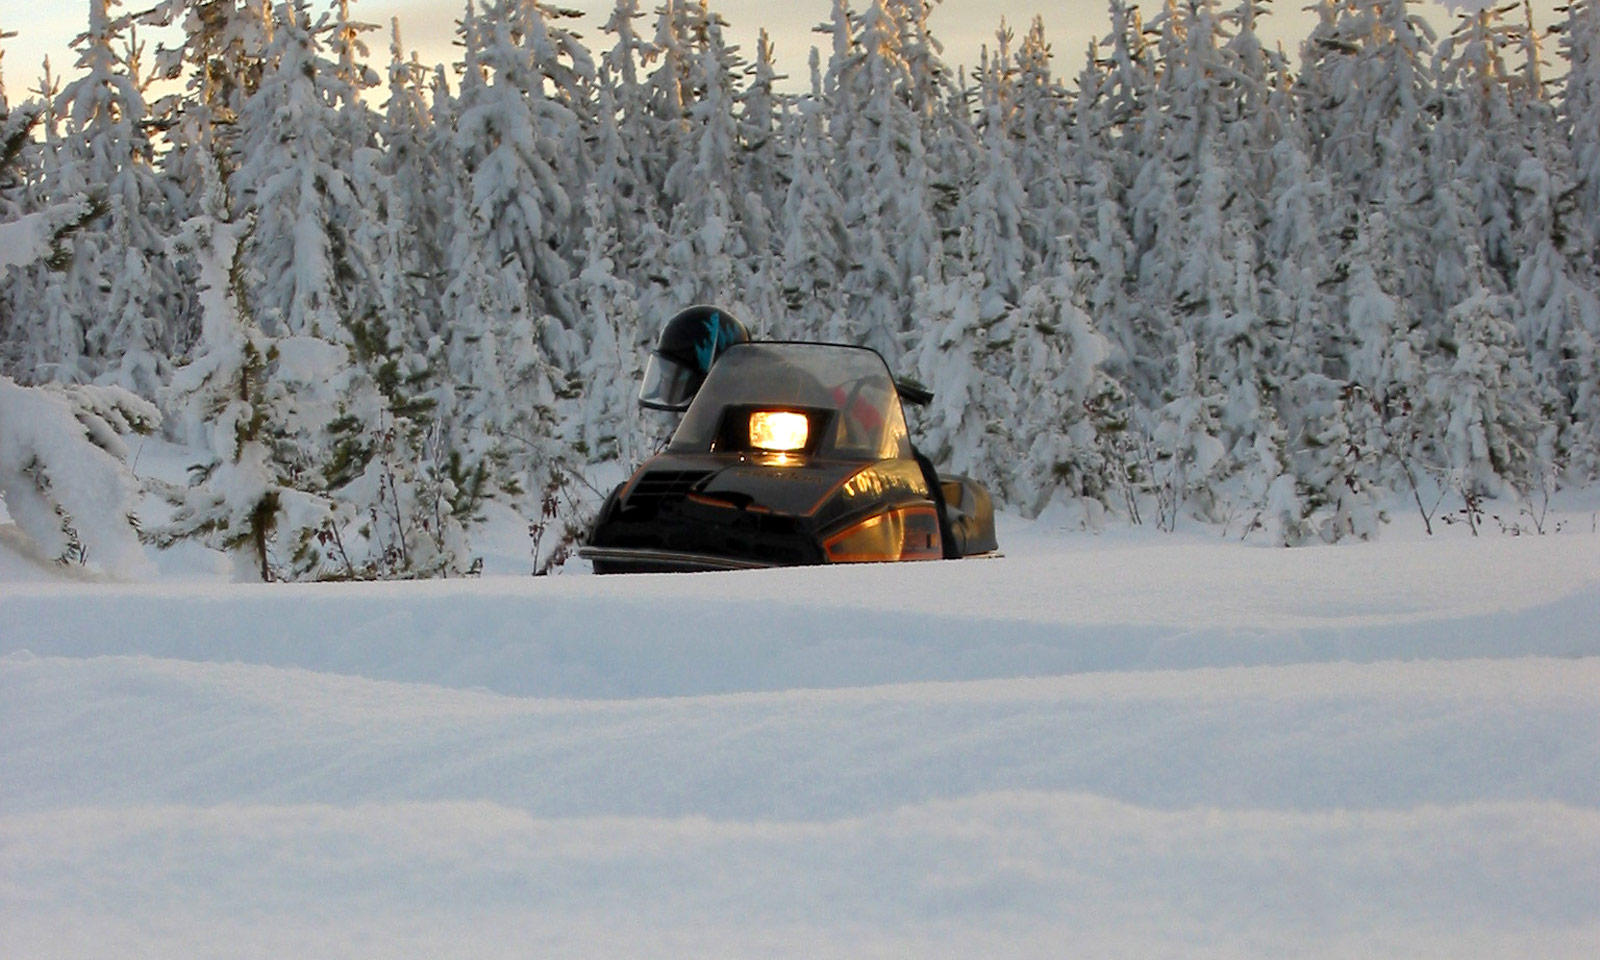 Snowmobile with light on